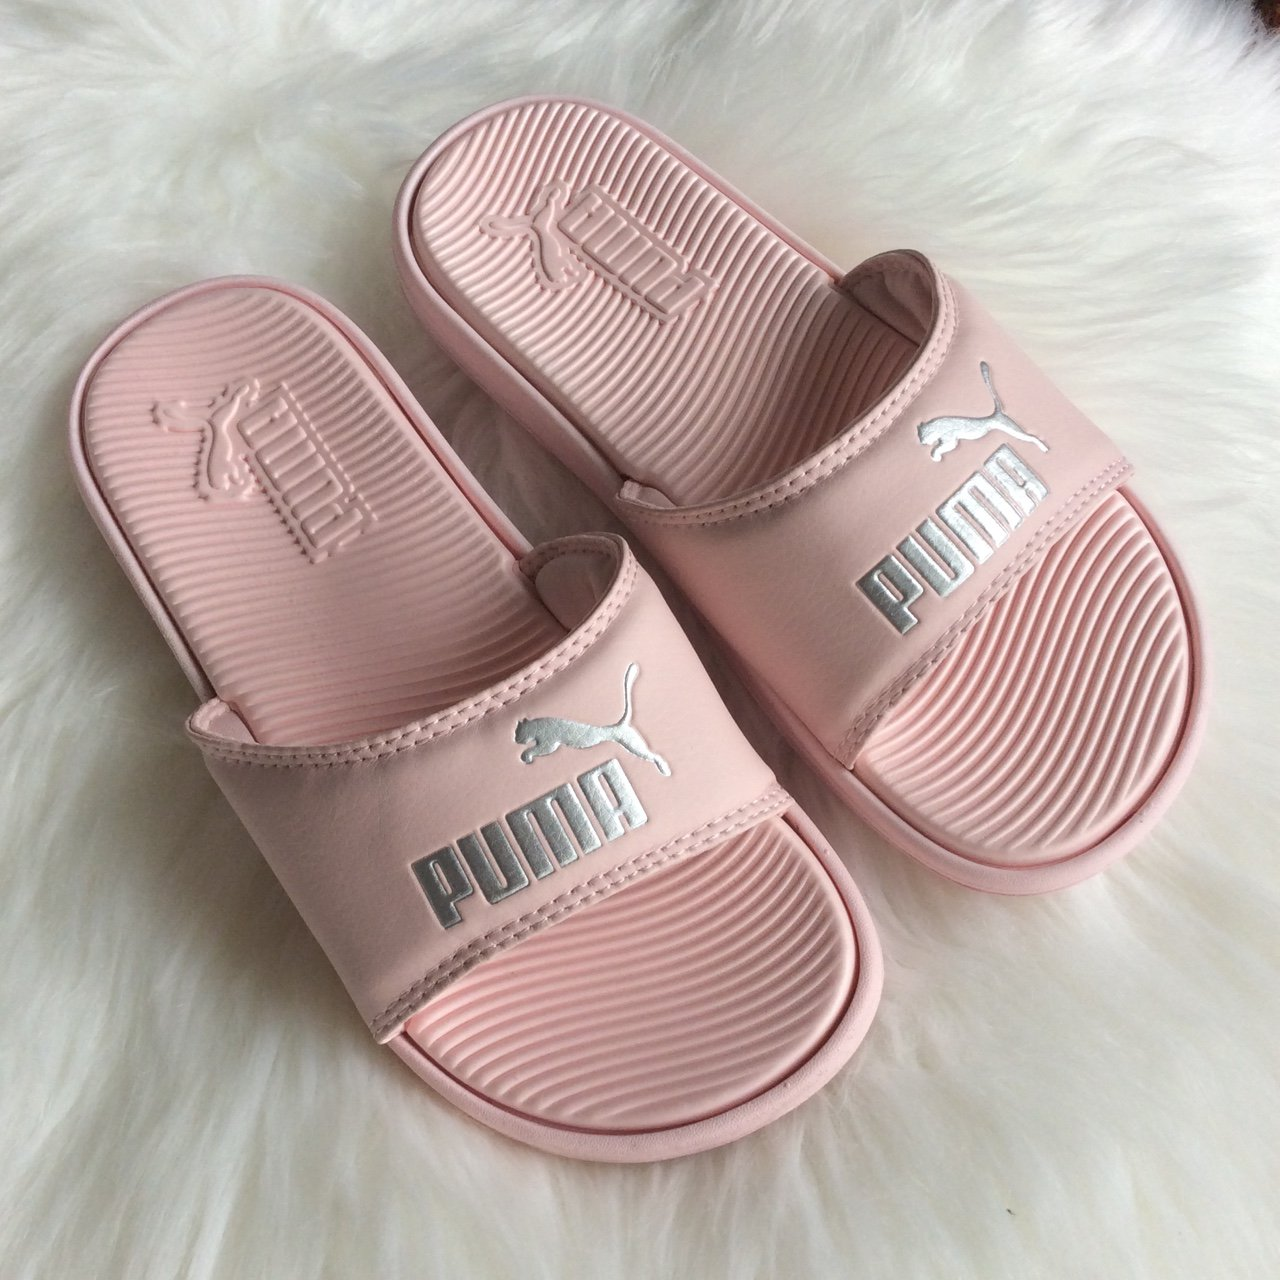 Authentic New Pink Puma Slides Available in Sizes  Women s - Depop 77ee95e81f